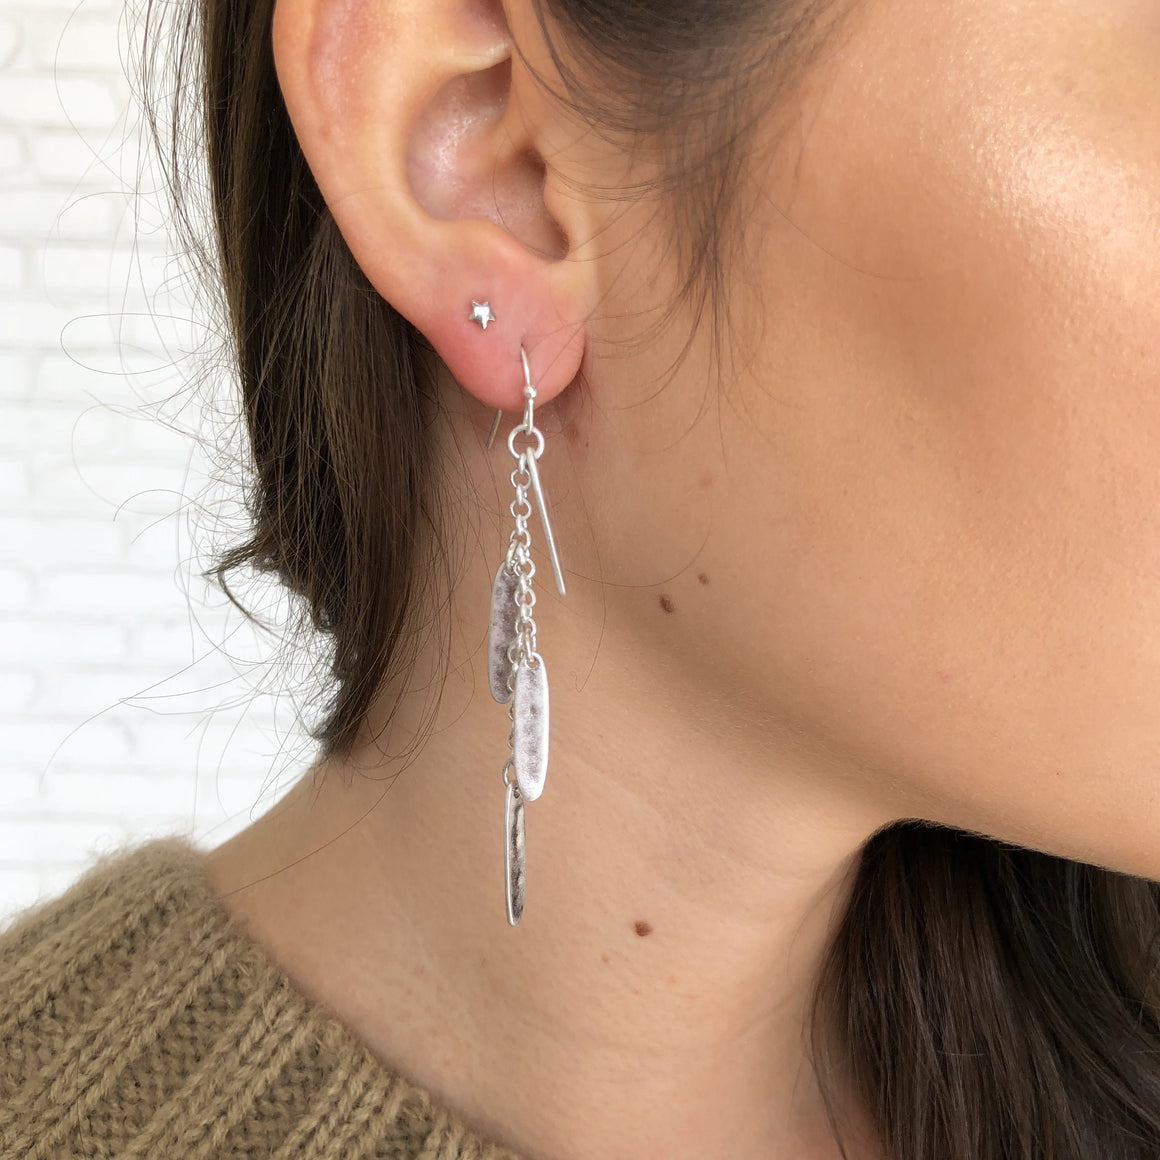 Charming Chime Earrings in Silver - Dainty Hooligan